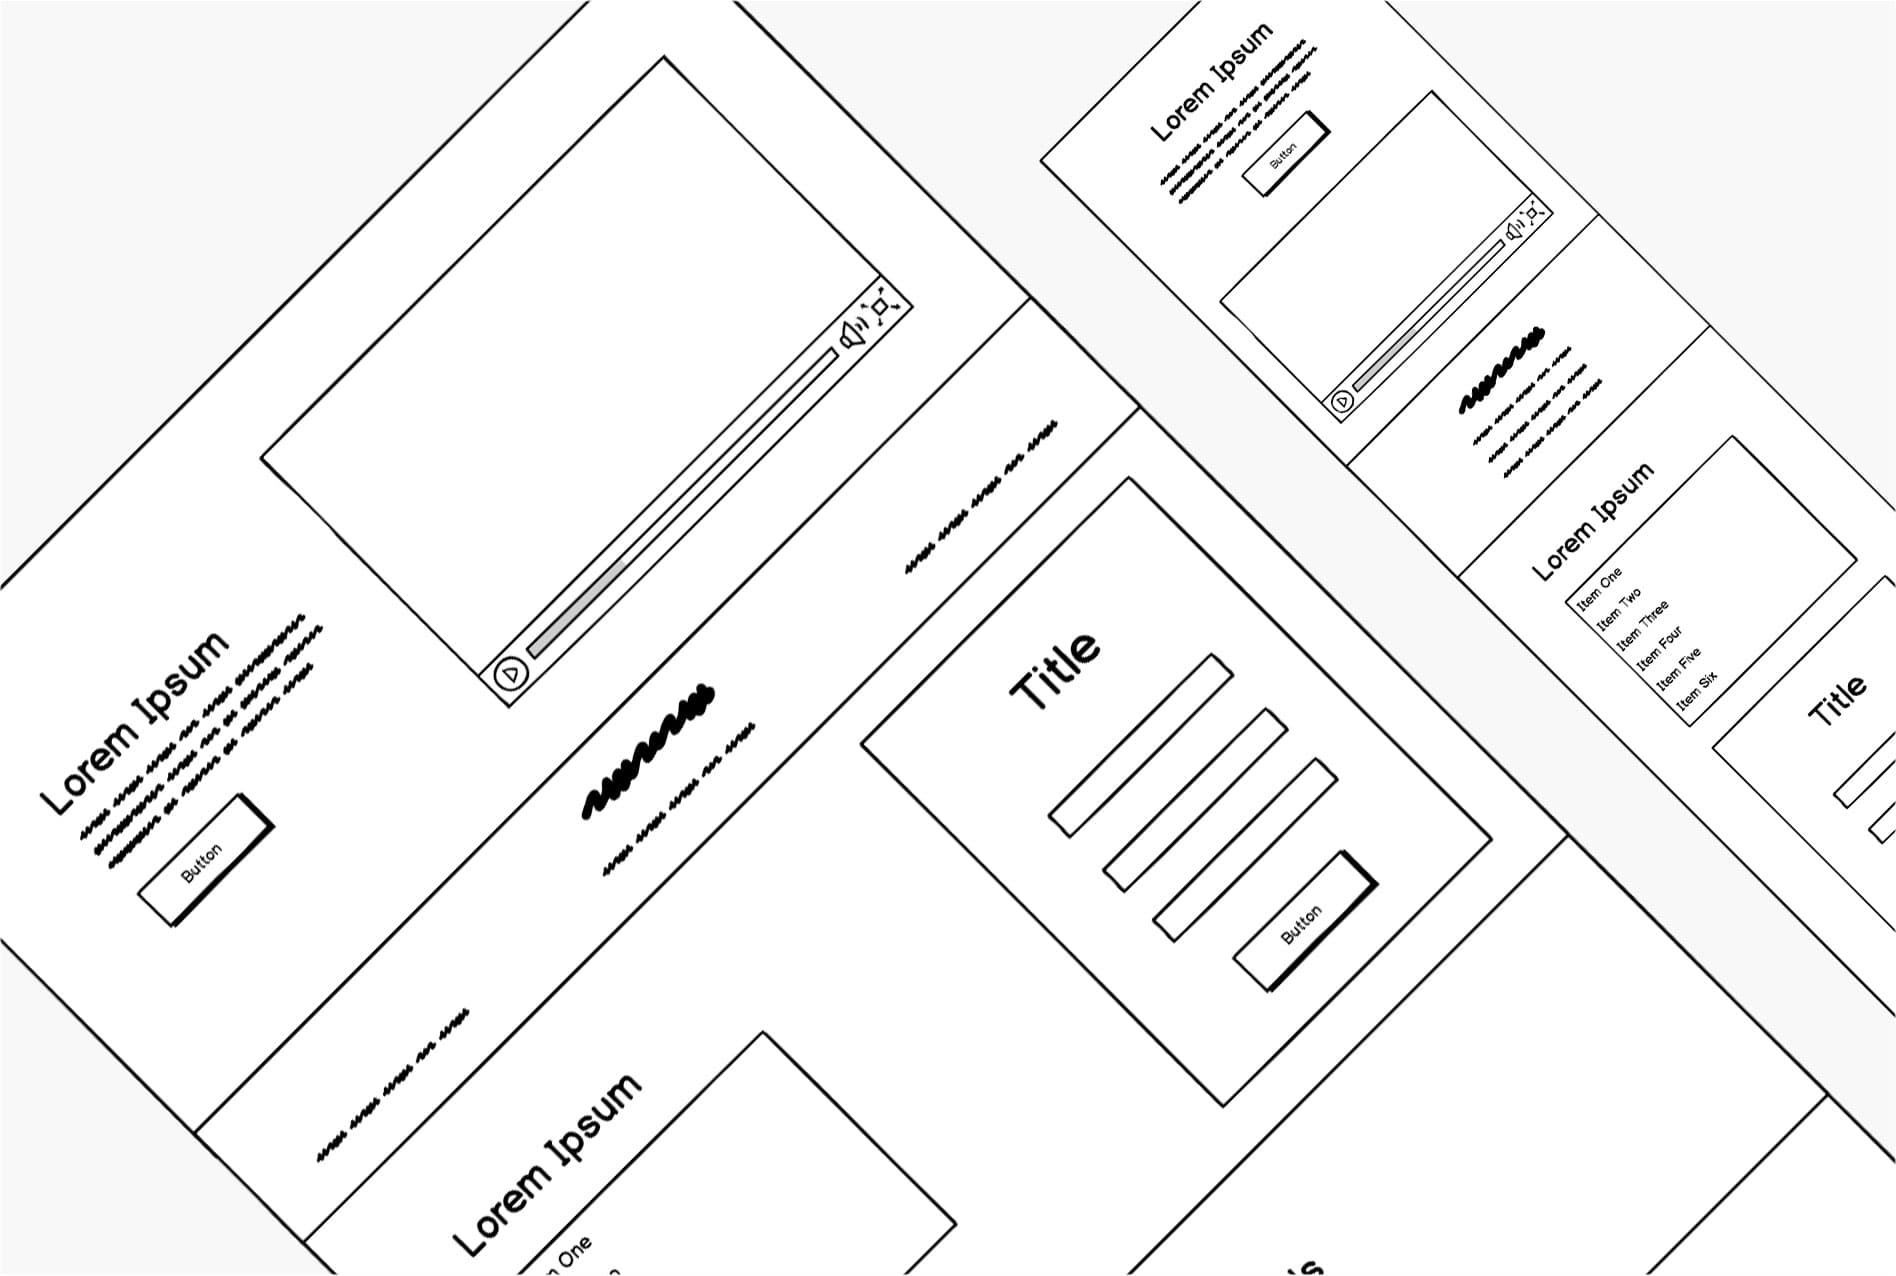 Photograph of wireframes